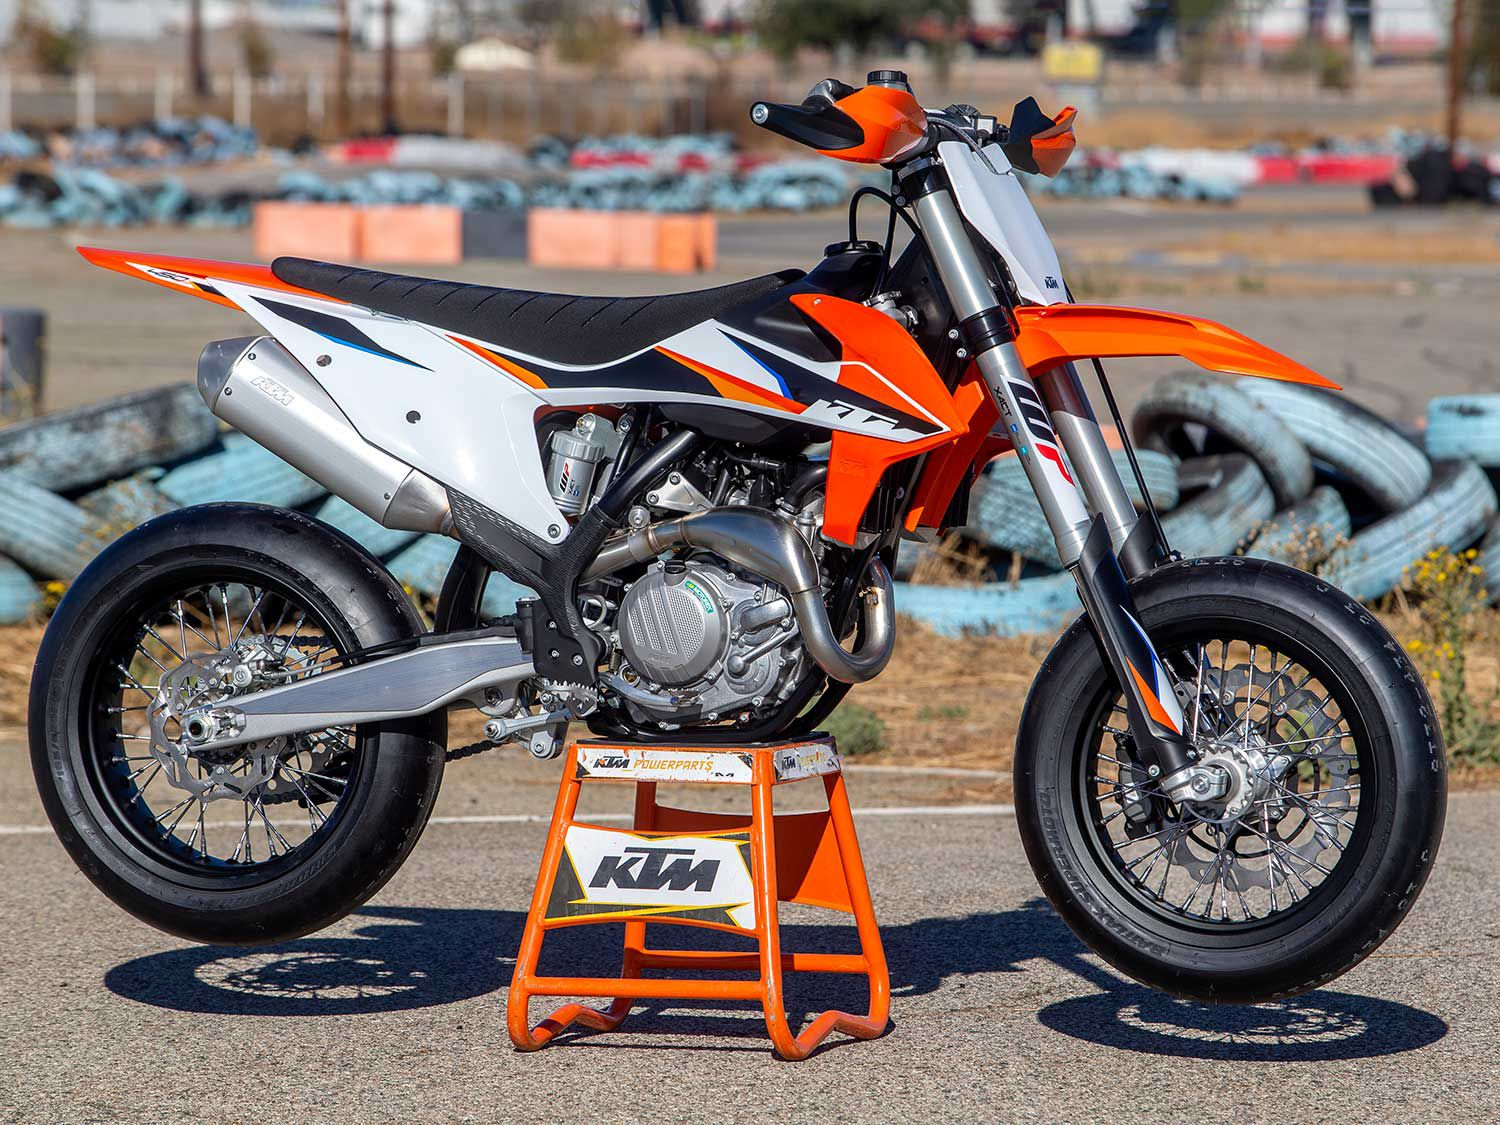 The 2021 450 SMR ($11,299) is a purpose-built competition-specification 450cc class supermoto. It swaps moto hardware for an asphalt setup.